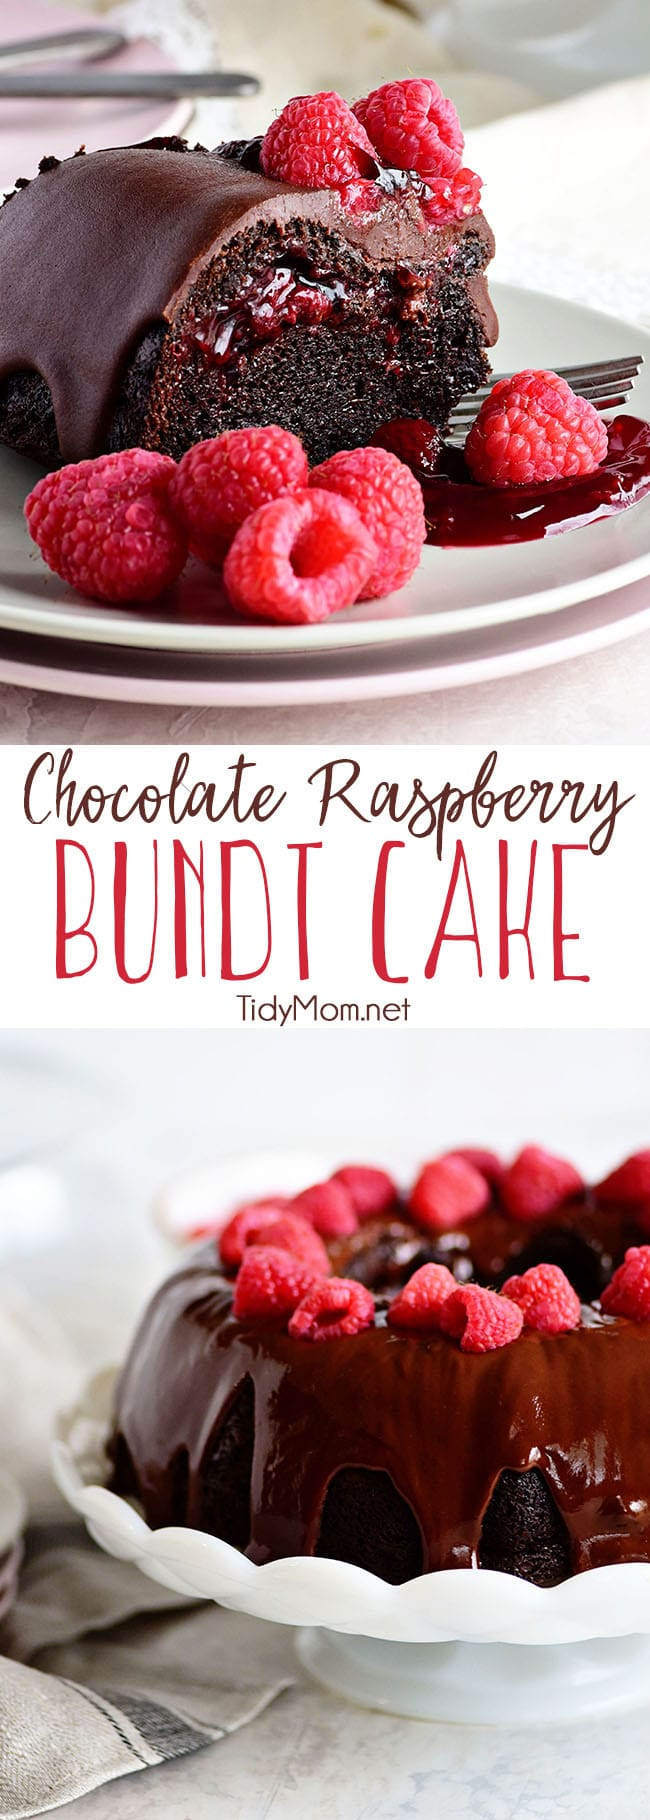 Chocolate Raspberry Bundt Cake with a surprise raspberry filling and a Chocolate Chambord Glaze will put any chocolate lover into a state of pure bliss. Get the full printable recipe for this chocolate bundt cake at TidyMom.net #cake #chocolatecake #raspberry #desserts #bundtcake